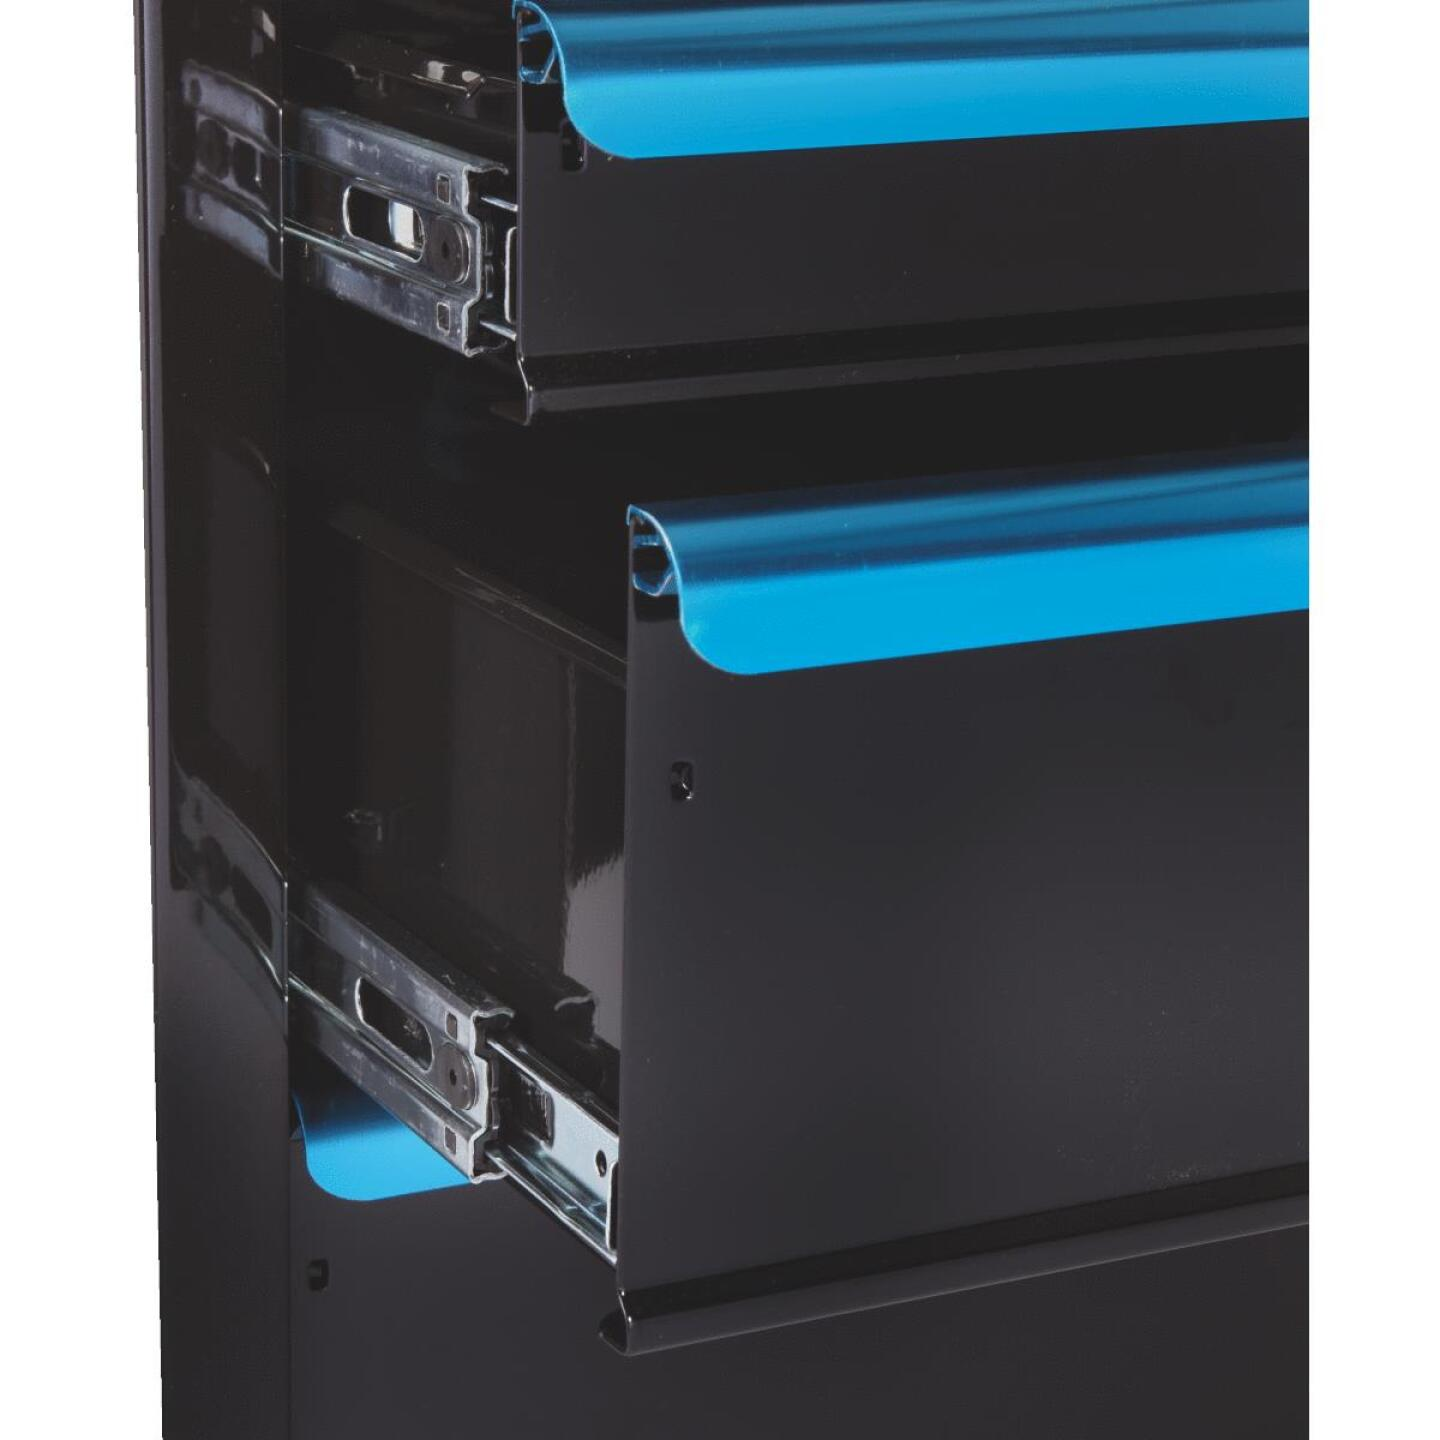 Channellock 26 In. 5-Drawer Tool Roller Cabinet Image 3